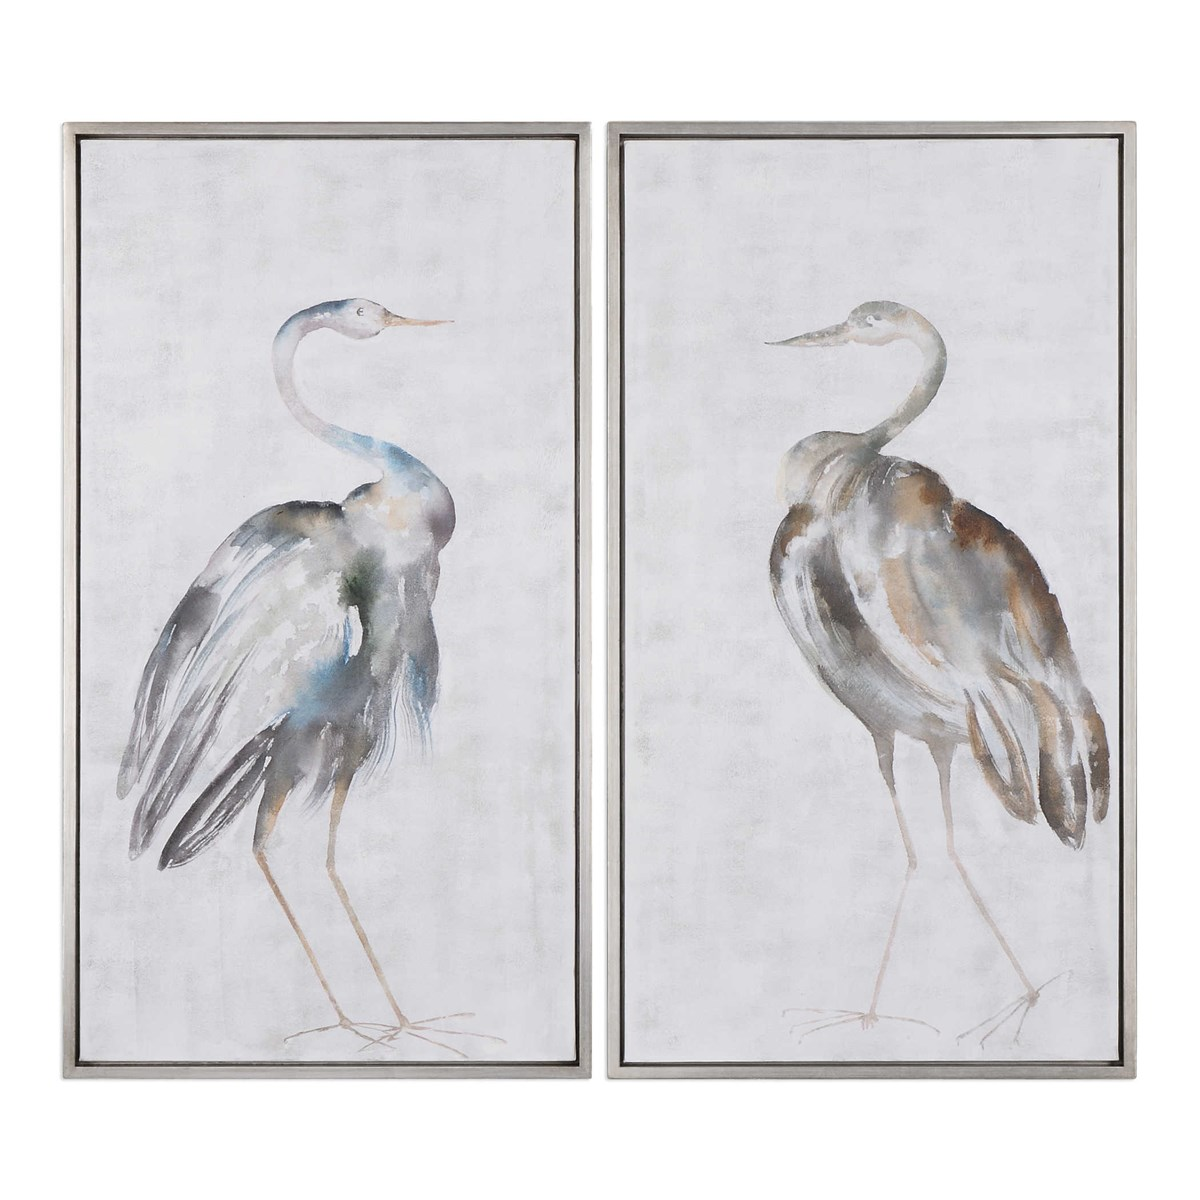 Watchful Bird I and II-$198.00 ea.